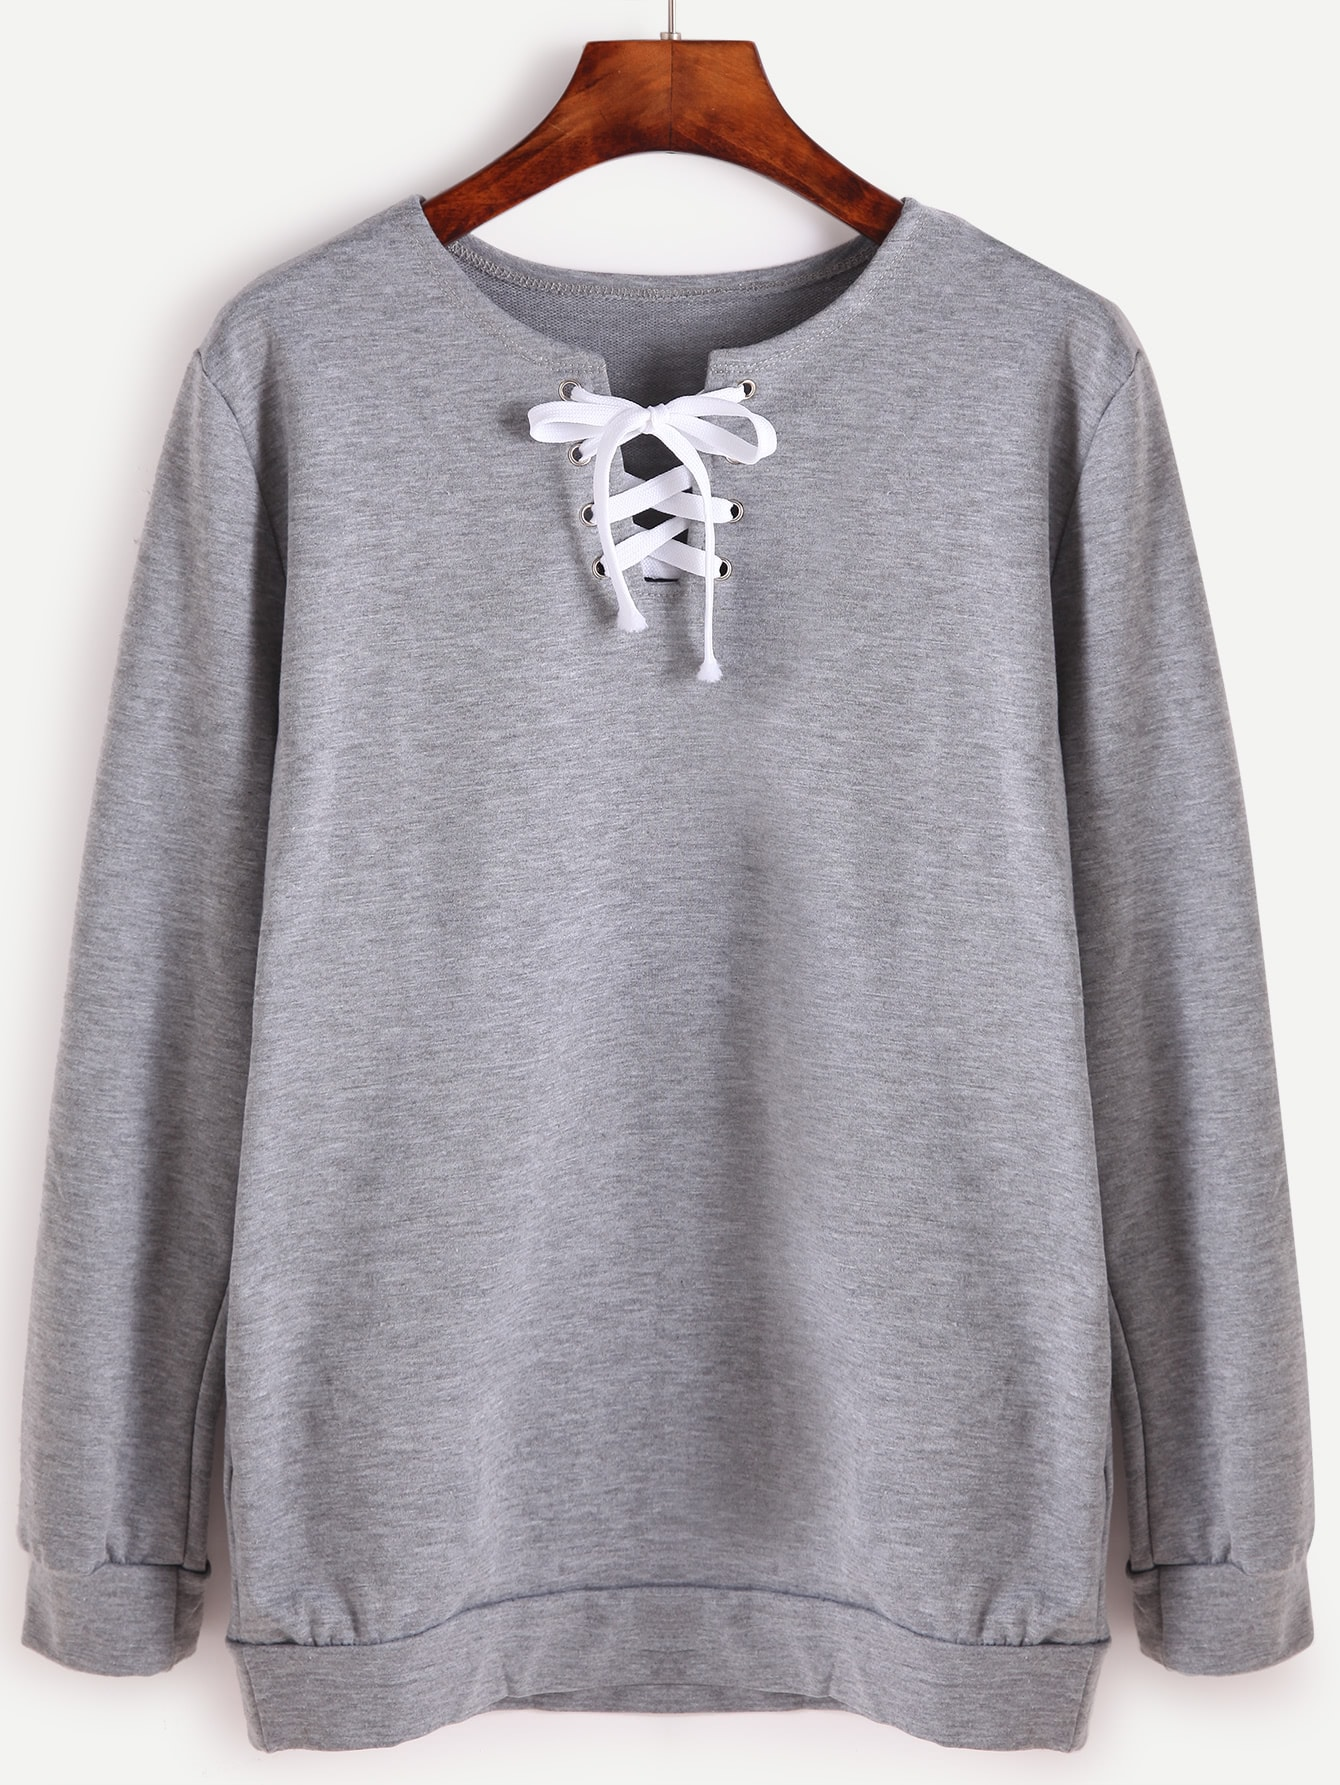 Grey Lace Up Front Long Sleeve SweatshirtGrey Lace Up Front Long Sleeve Sweatshirt<br><br>color: Grey<br>size: L,M,S,XL